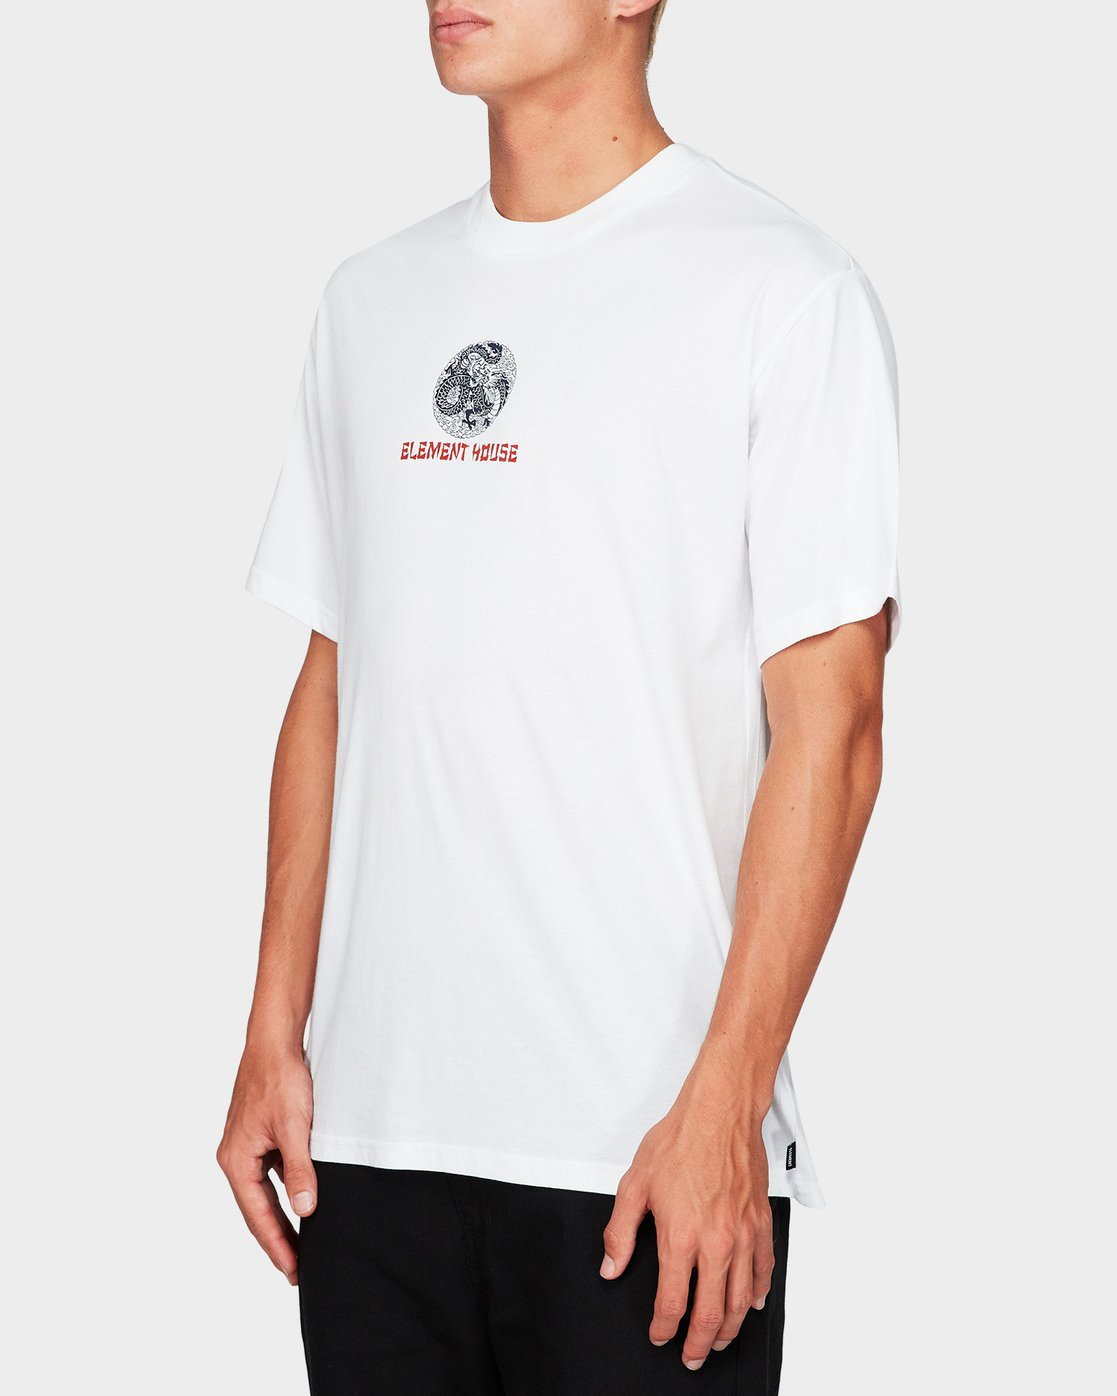 2 Element House Ss Tee White 194019 Element